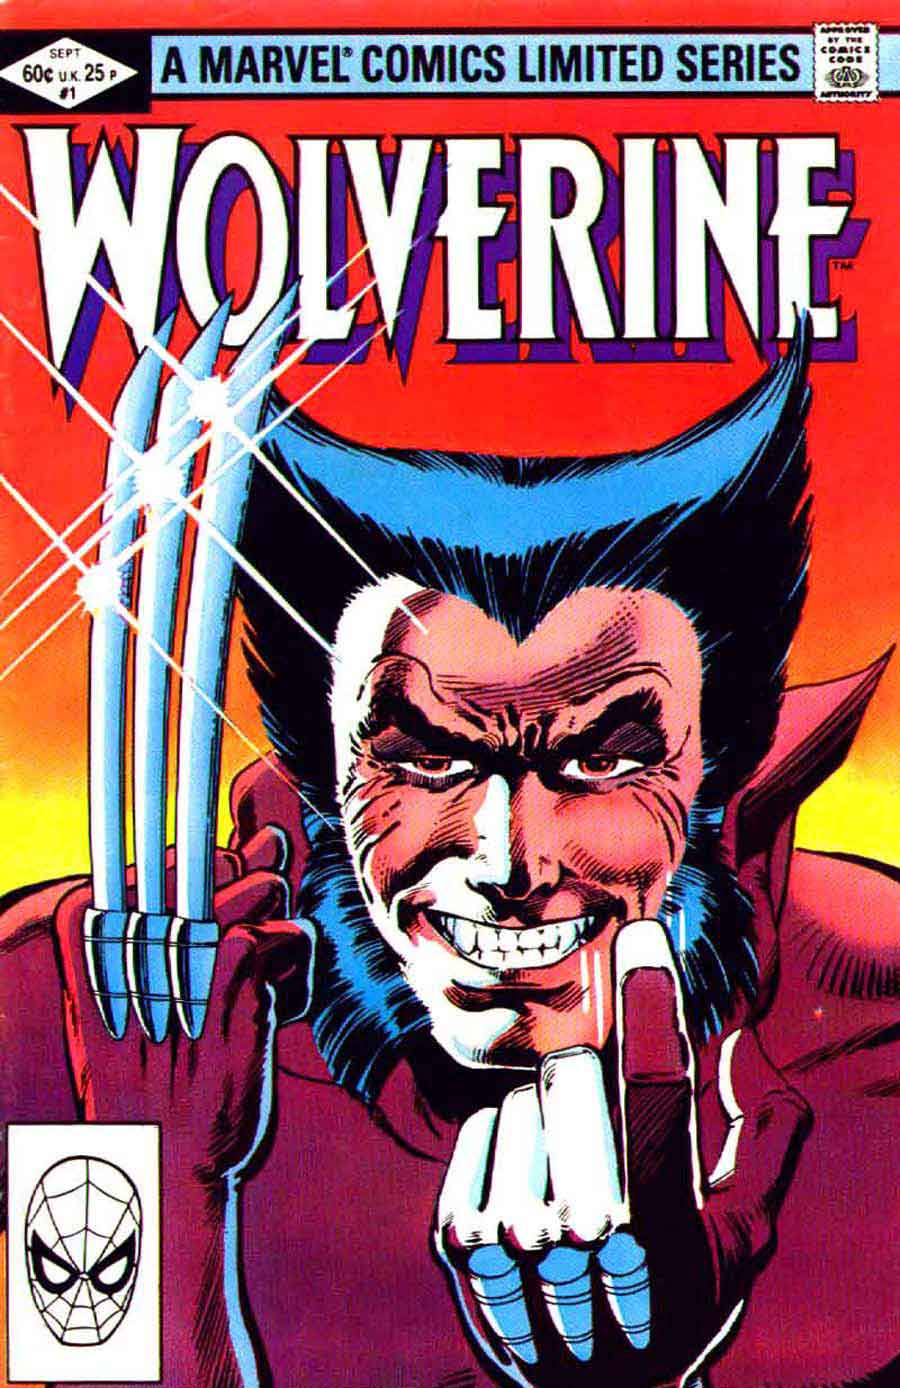 Wolverine v1 #1 - Frank Miller art 1980s marvel comic book cover